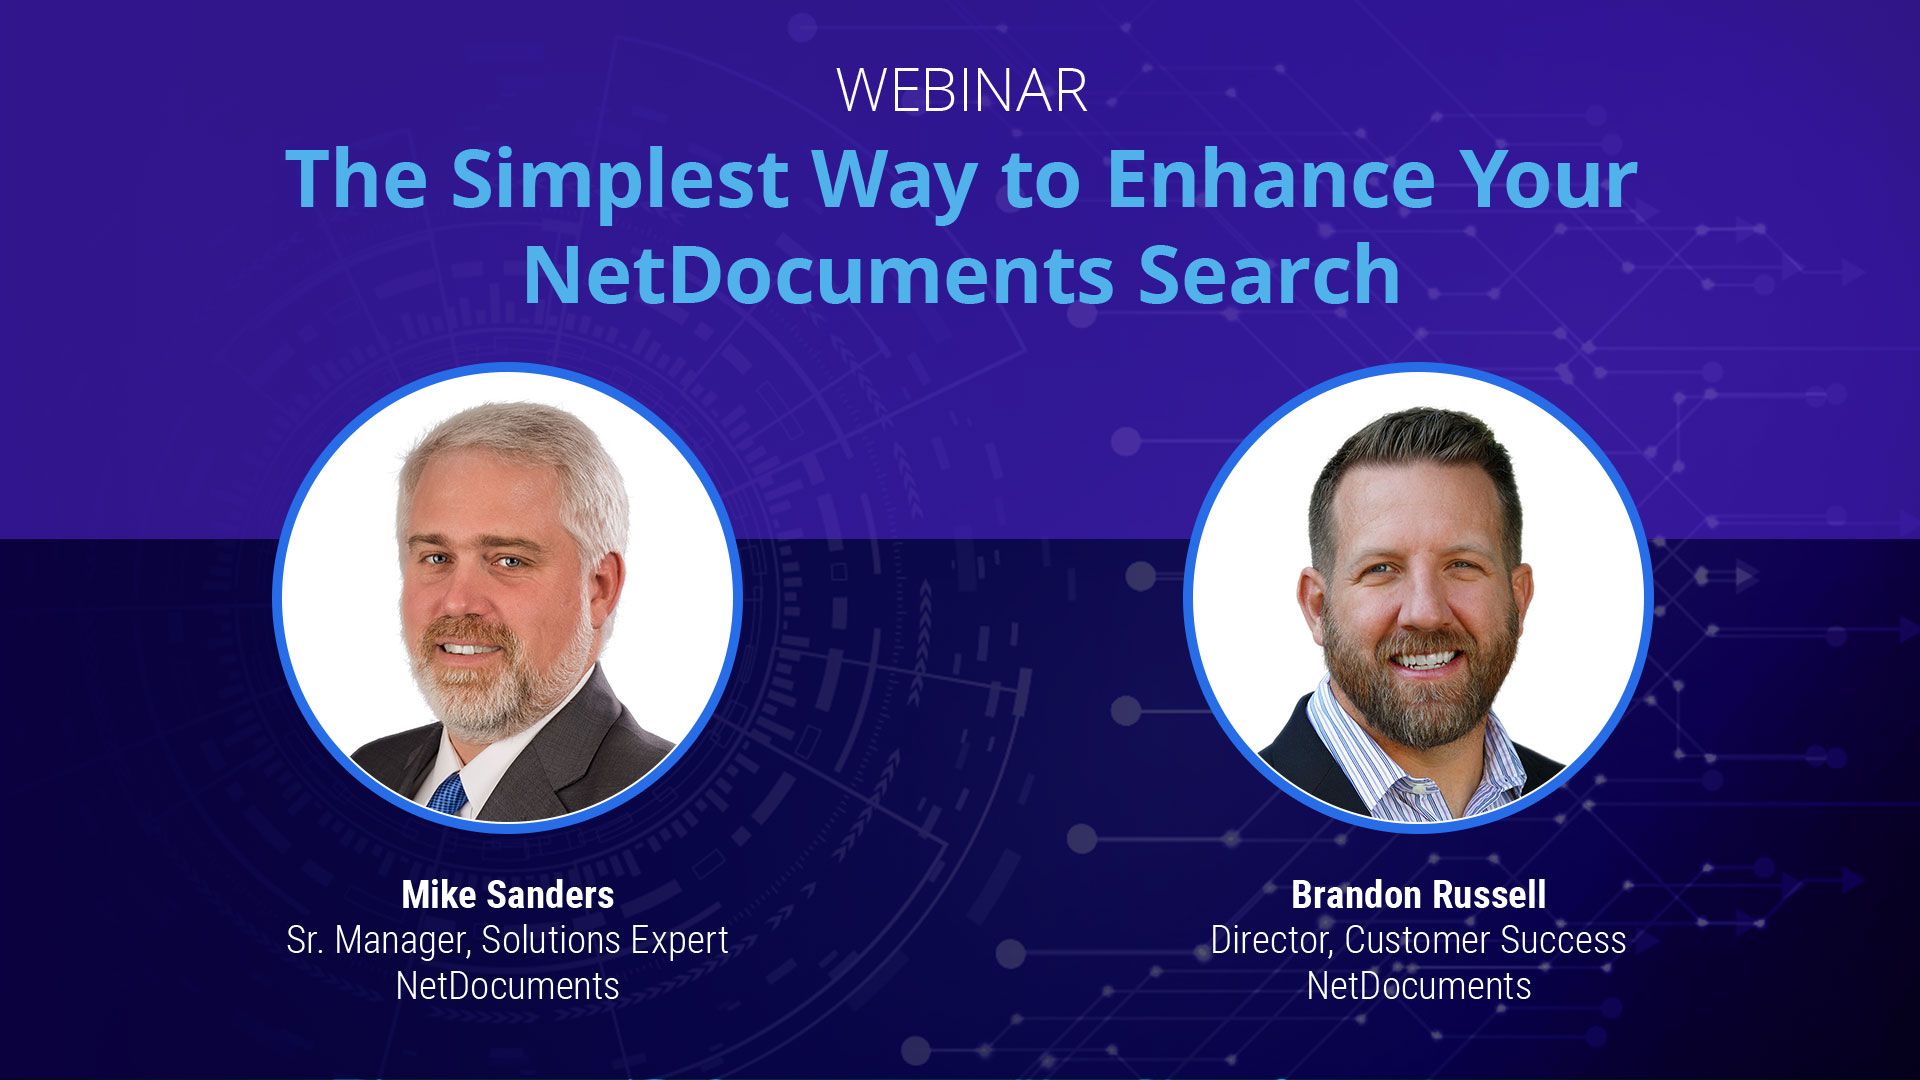 Webinar graphic with Mike Sanders and Brandon Russell of NetDocuments discussing ways to enhance NetDocuments search.